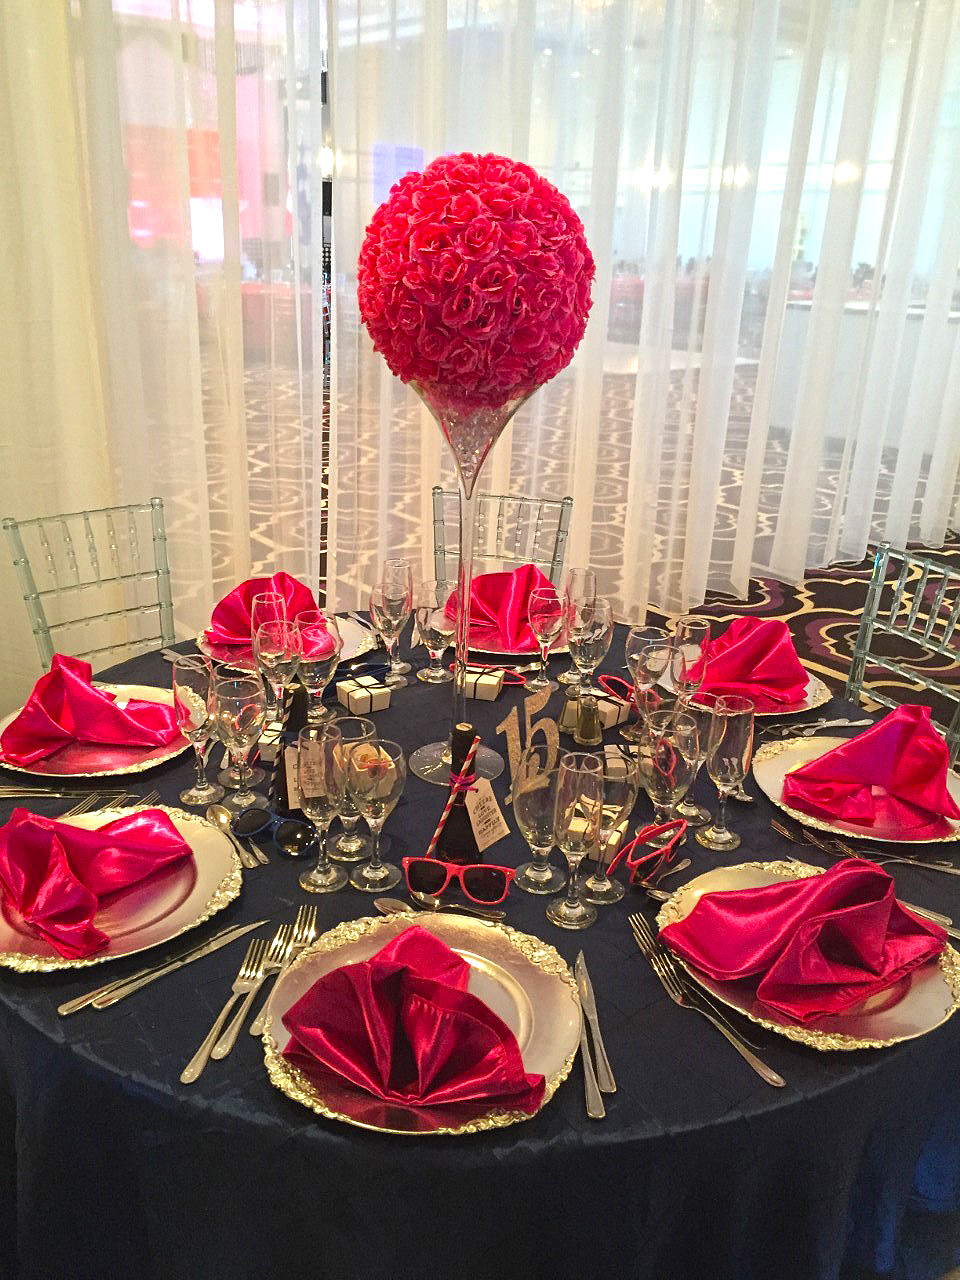 Hot pink rose ball